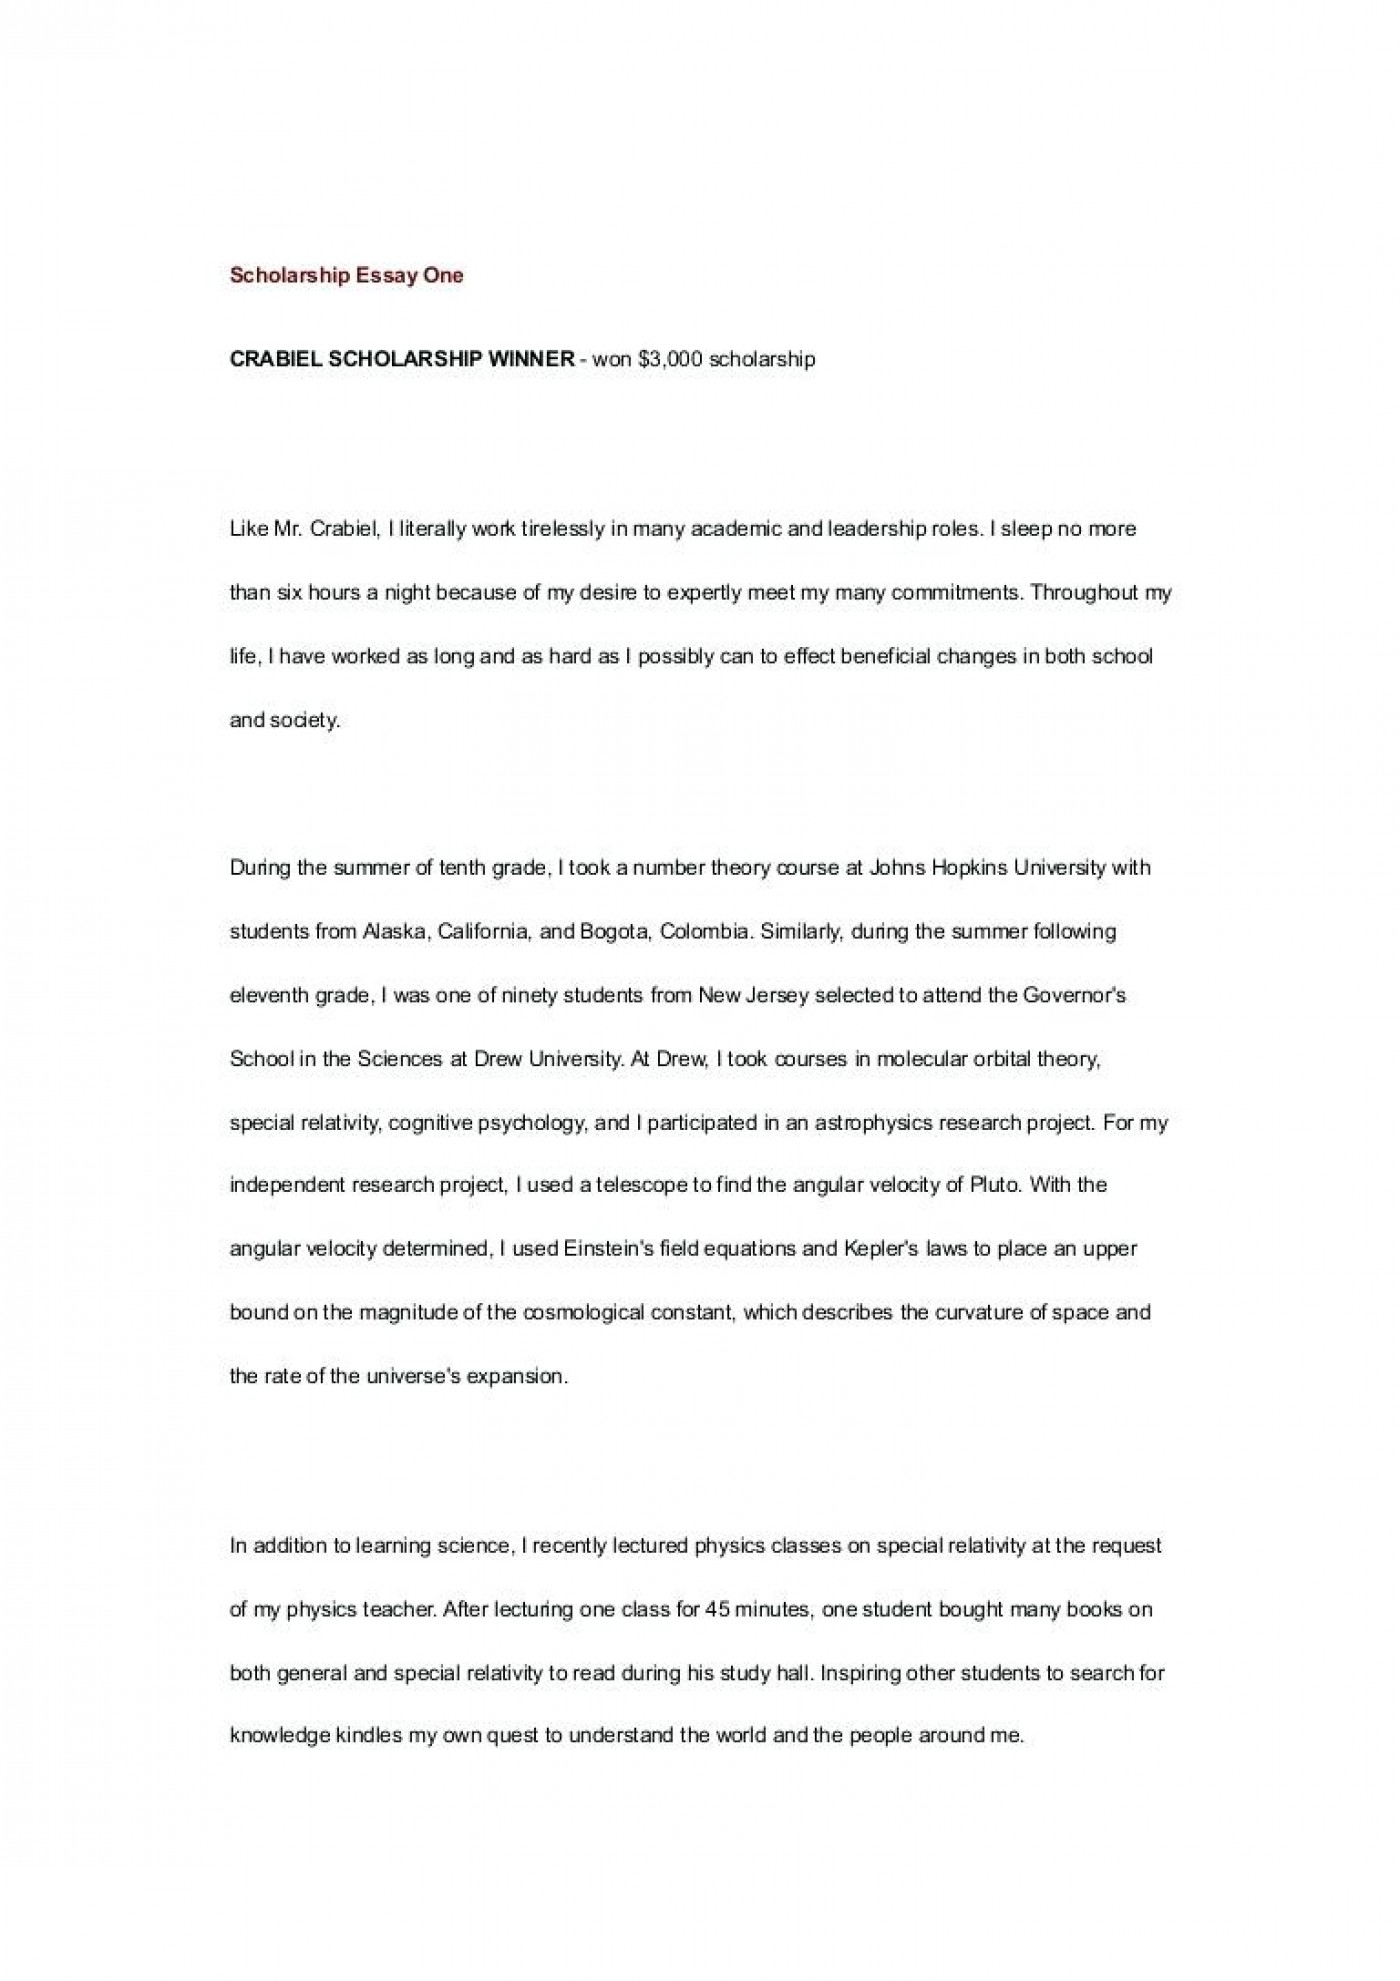 021 Essay Example College Scholarship Application Template No Legit Resume Cover Letter Thumbnail For Sample Format Exceptional Scholarships Undergraduates High School Seniors Students 2019 1400